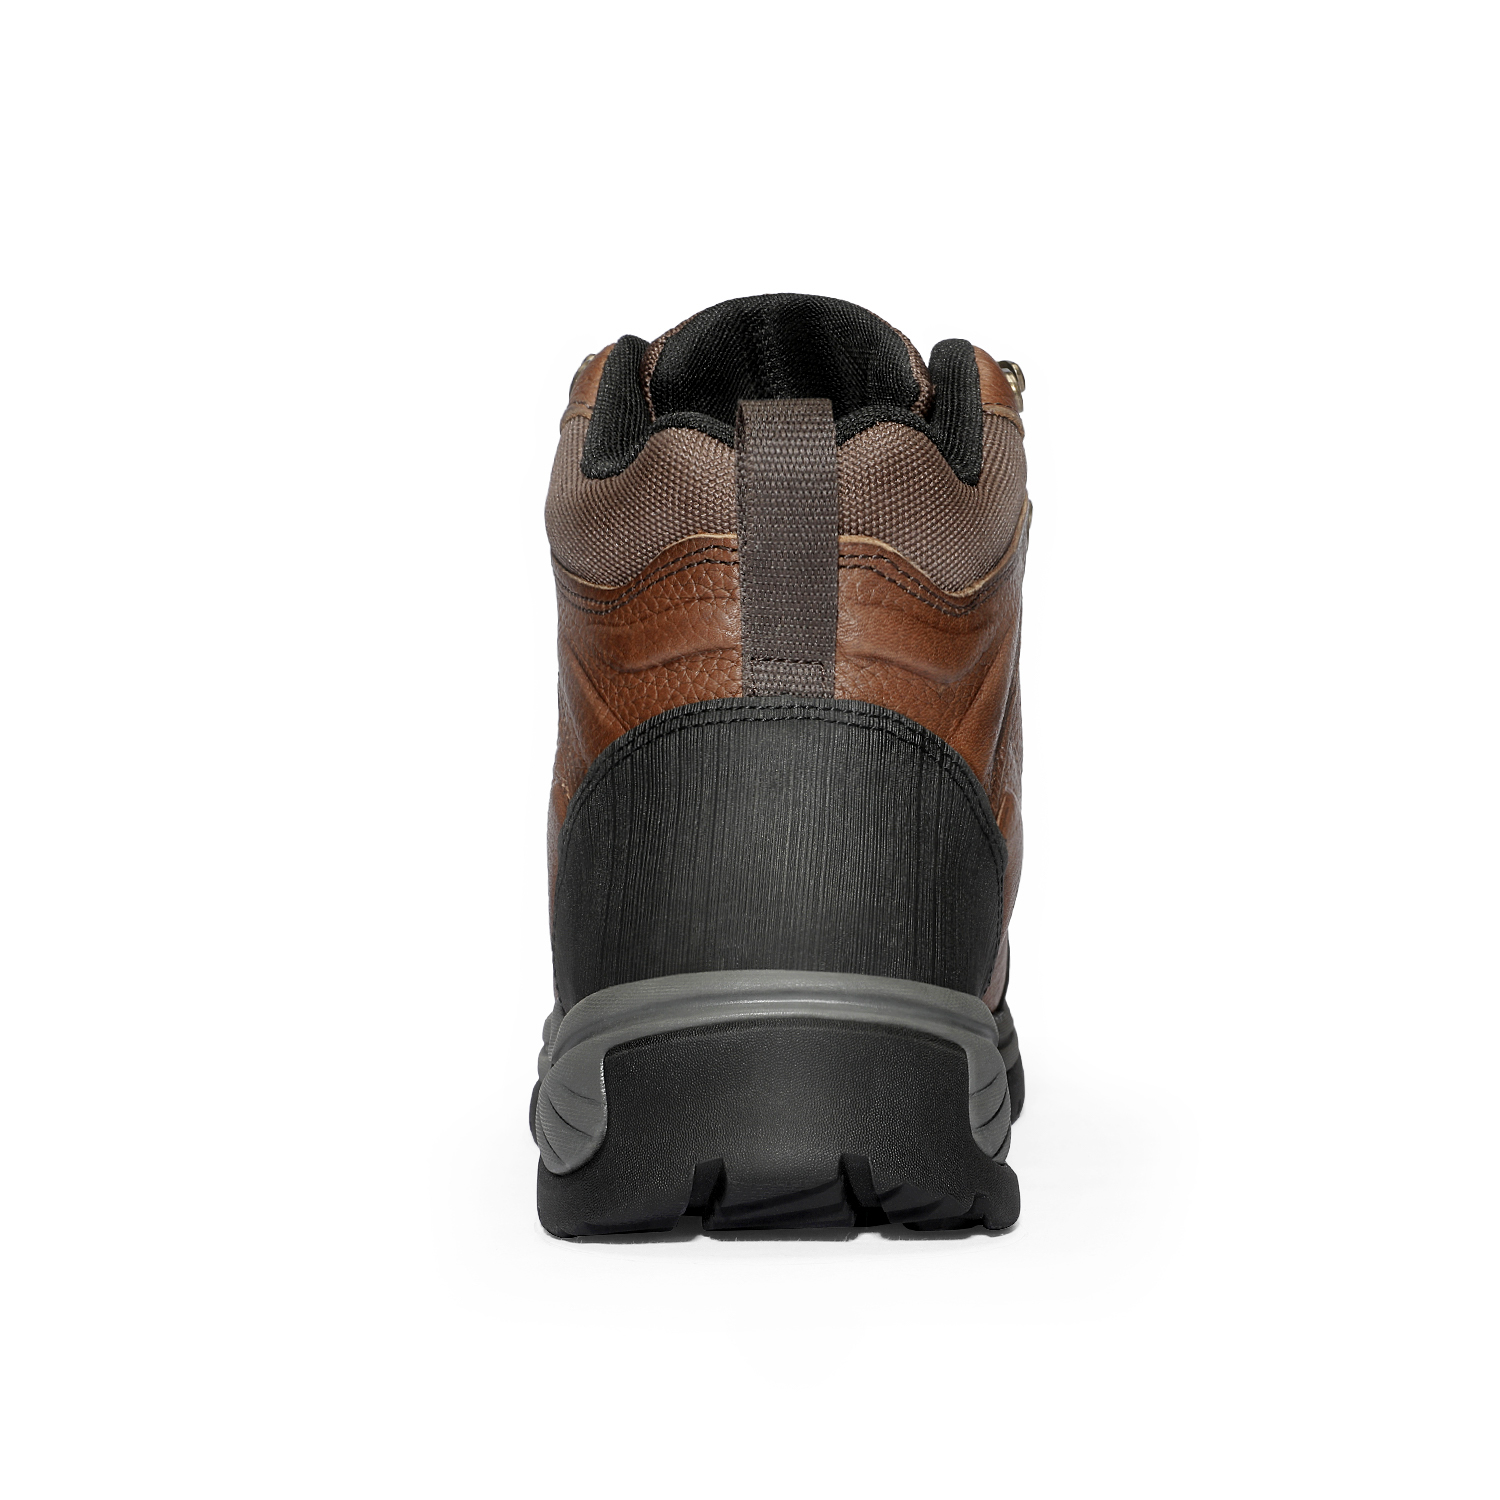 NORTIV-8-Men-039-s-Safety-Shoes-Steel-Toe-Work-Boots-Indestructible-Waterproof-Boots thumbnail 12